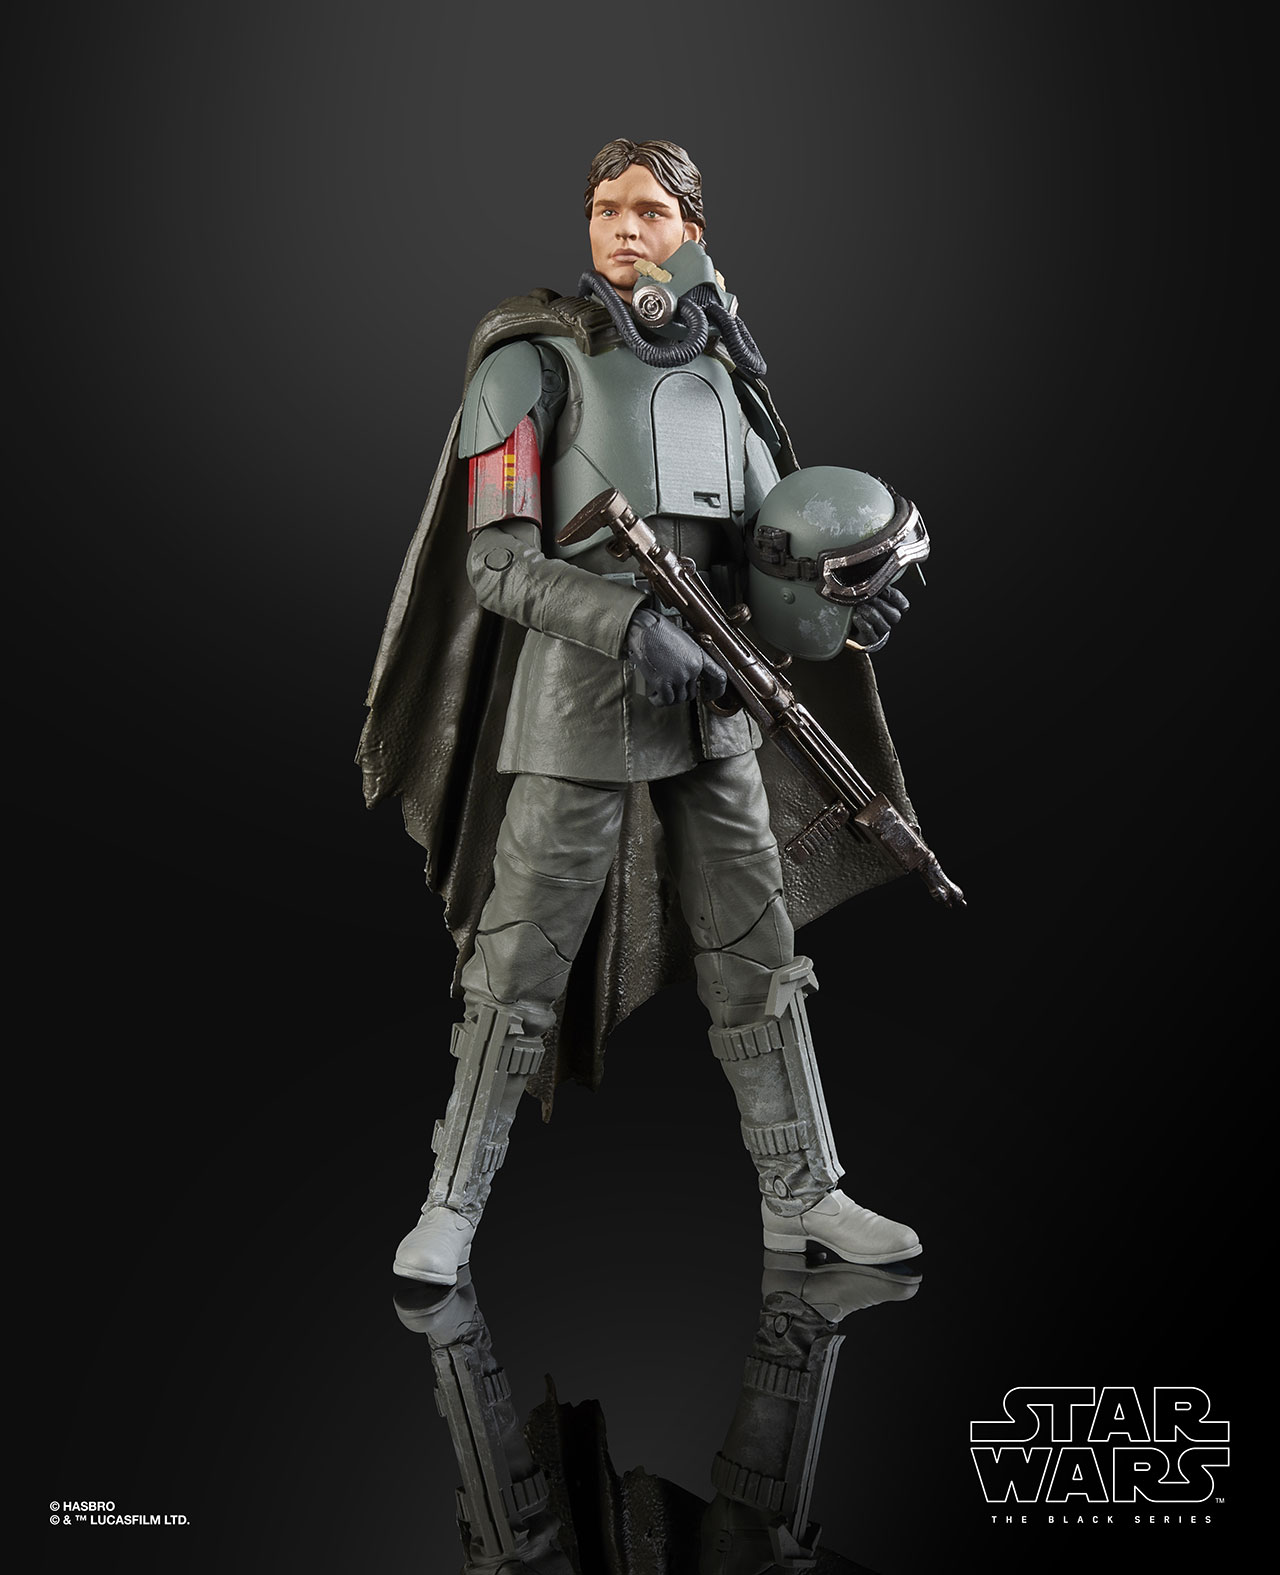 STAR WARS THE BLACK SERIES FIGURE Han Solo Mimban (1)